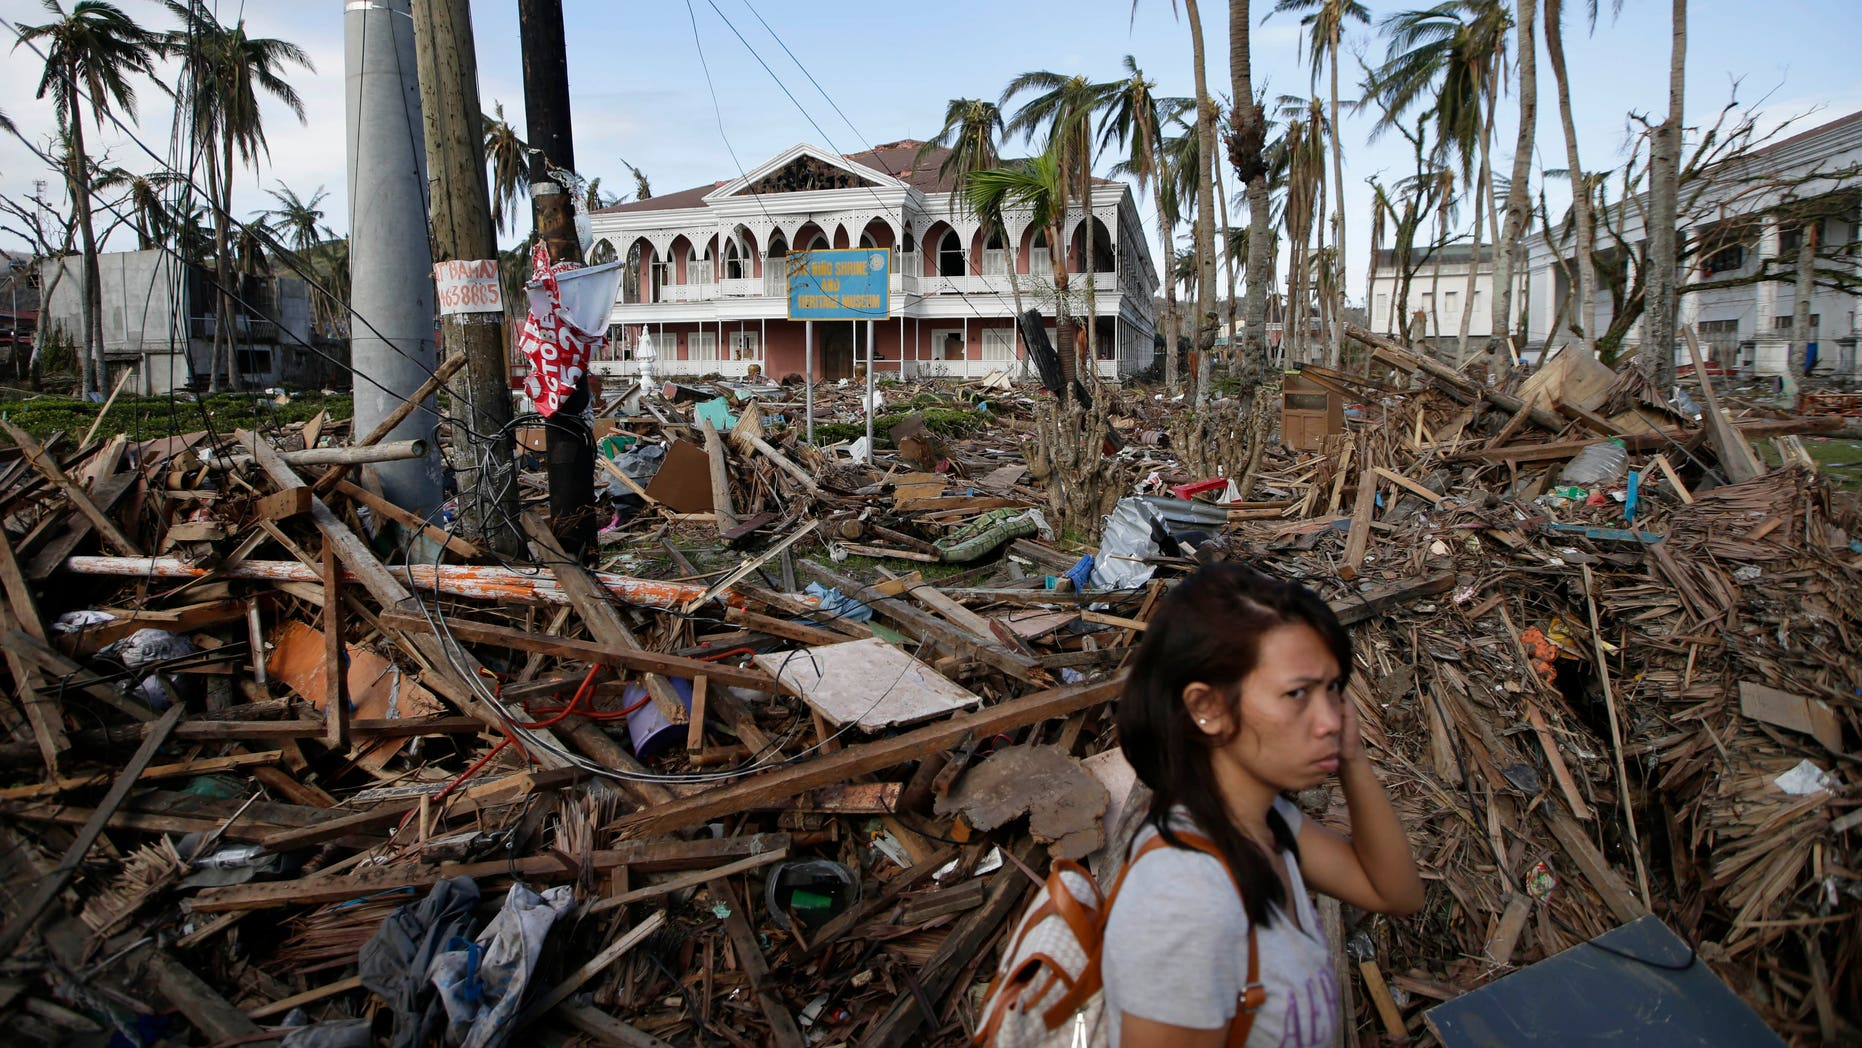 A typhoon survivor walks past the debris-littered Sto. Nino Shrine and Heritage Museum which used to house former Philippine First Lady Imelda Marcos' collection of art pieces from Philippine national artists Sunday Nov. 17, 2013 at  Tacloban city, Leyte province in central Philippines. Typhoon Haiyan, one of the most powerful typhoons ever recorded, slammed into central Philippine provinces Nov.8, leaving a wide swath of destruction and thousands of people dead.(AP Photo/Bullit Marquez)